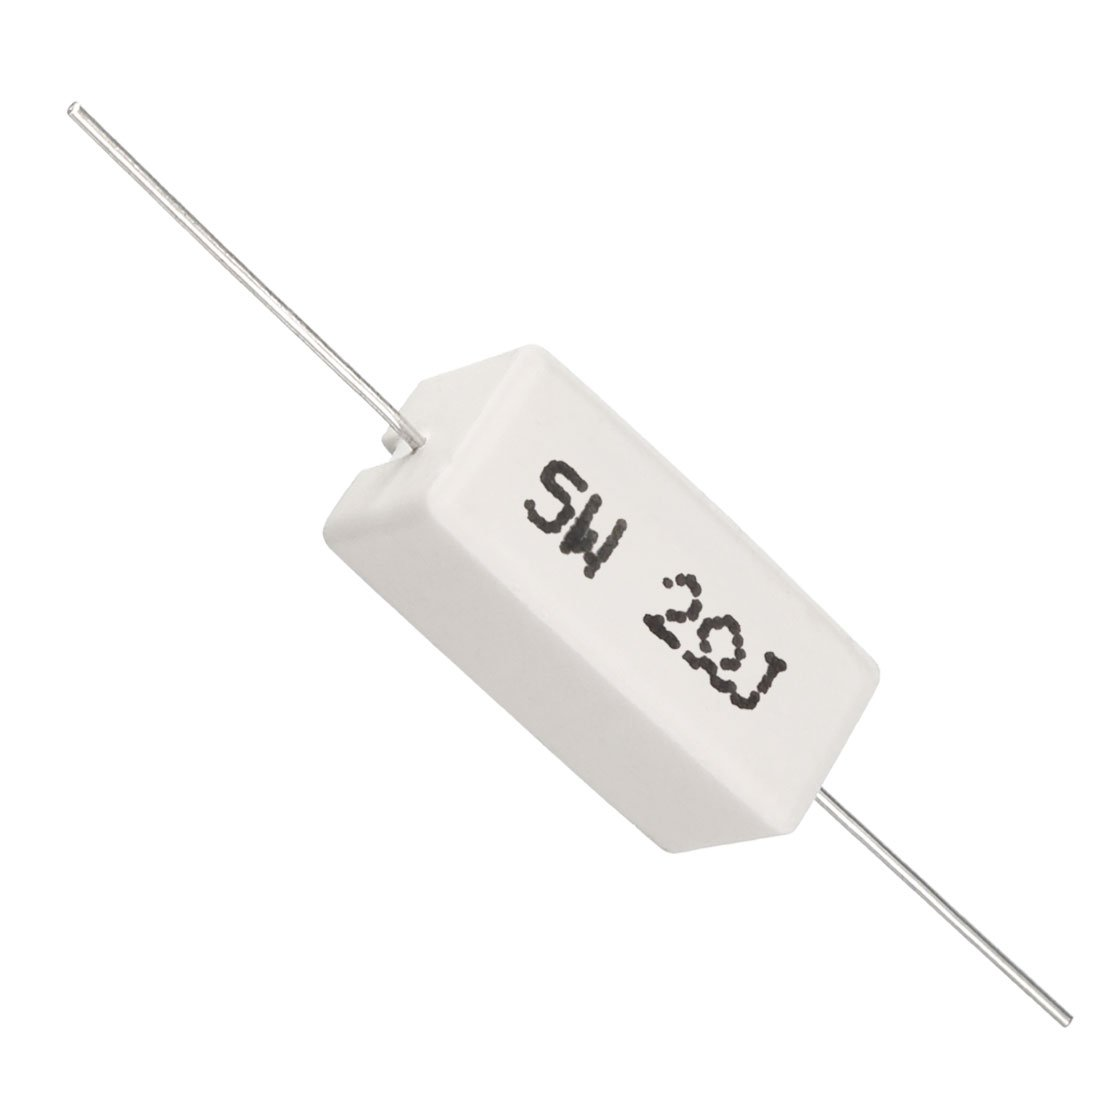 uxcell 5W 15 Ohm Power Resistor Ceramic Cement Resistor Axial Lead 15 Pcs White